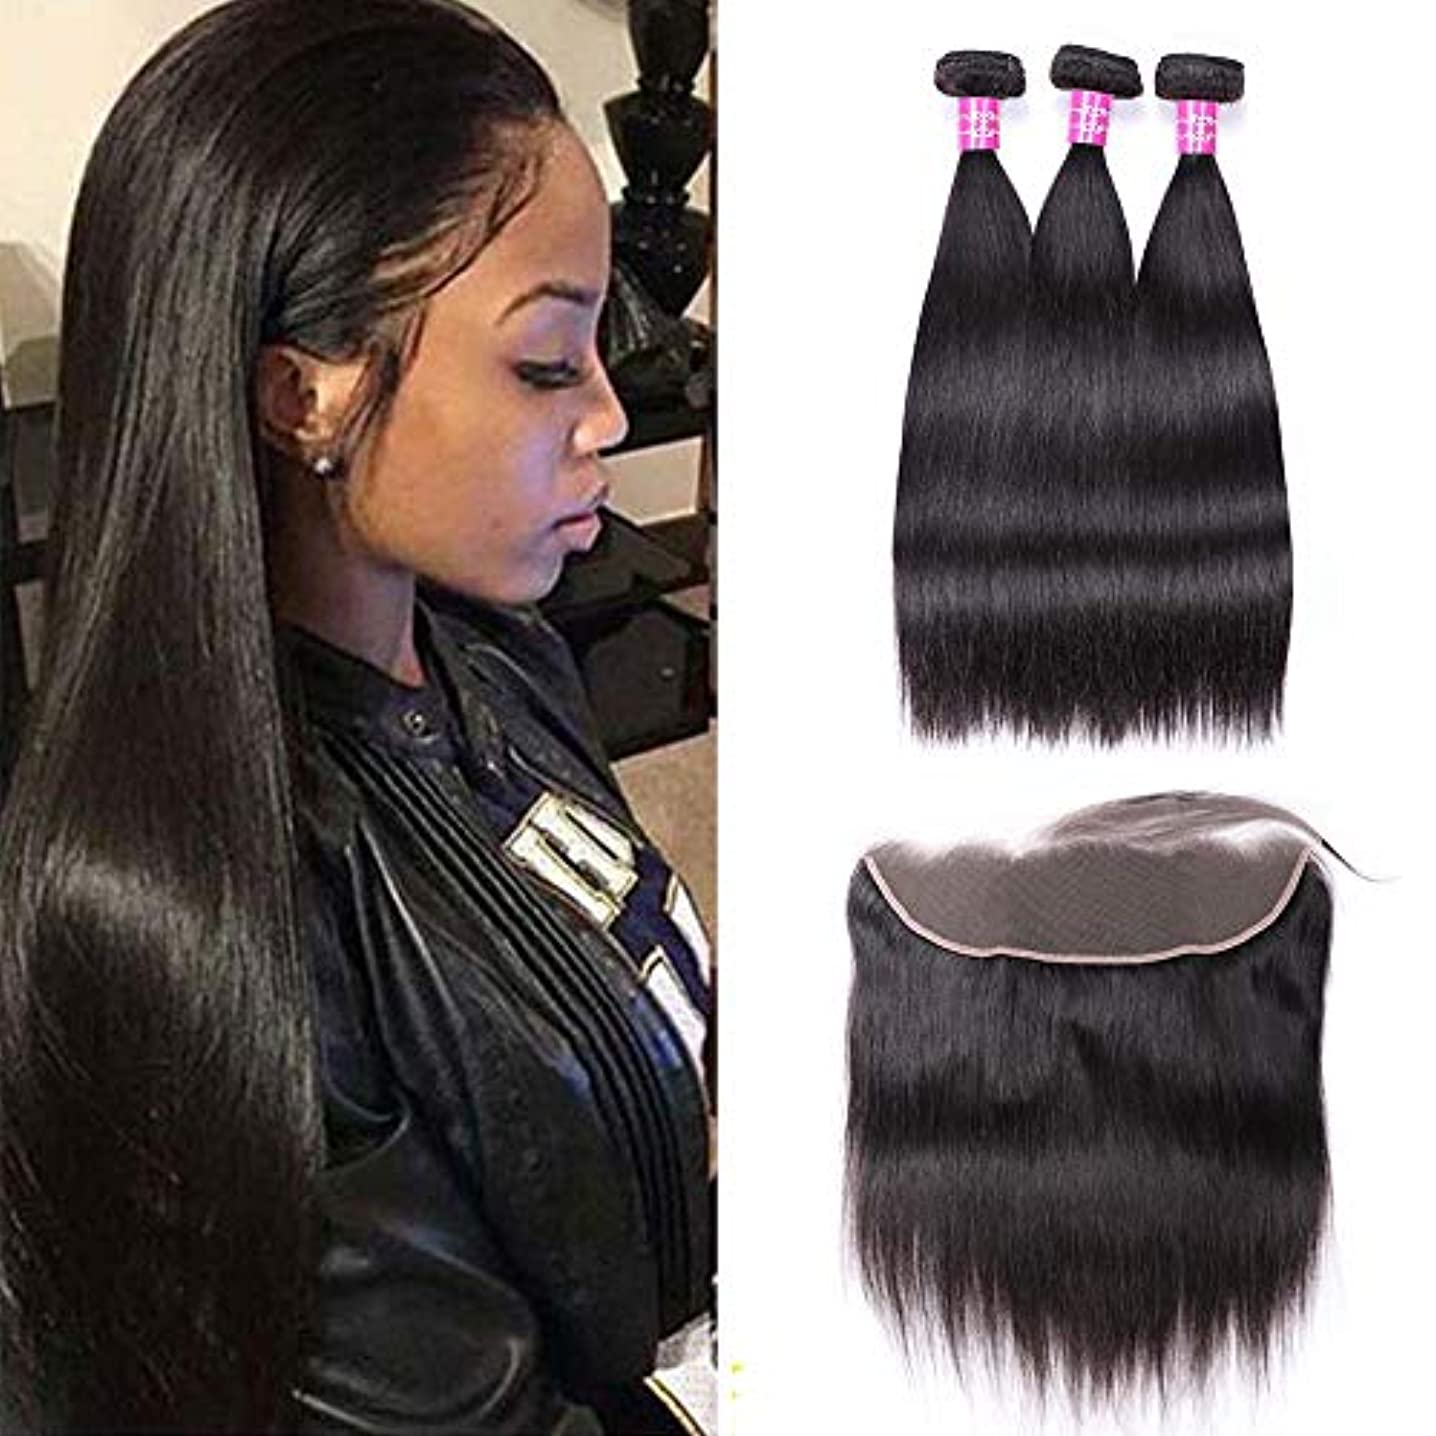 Sterly Brazilian Straight Hair 3 Bundles With Frontal Closure 13x4 Ear To Ear Lace Frontal With Bundles Unprocessed Virgin Human Hair Extensions Natural Color (12 14 16 +10)